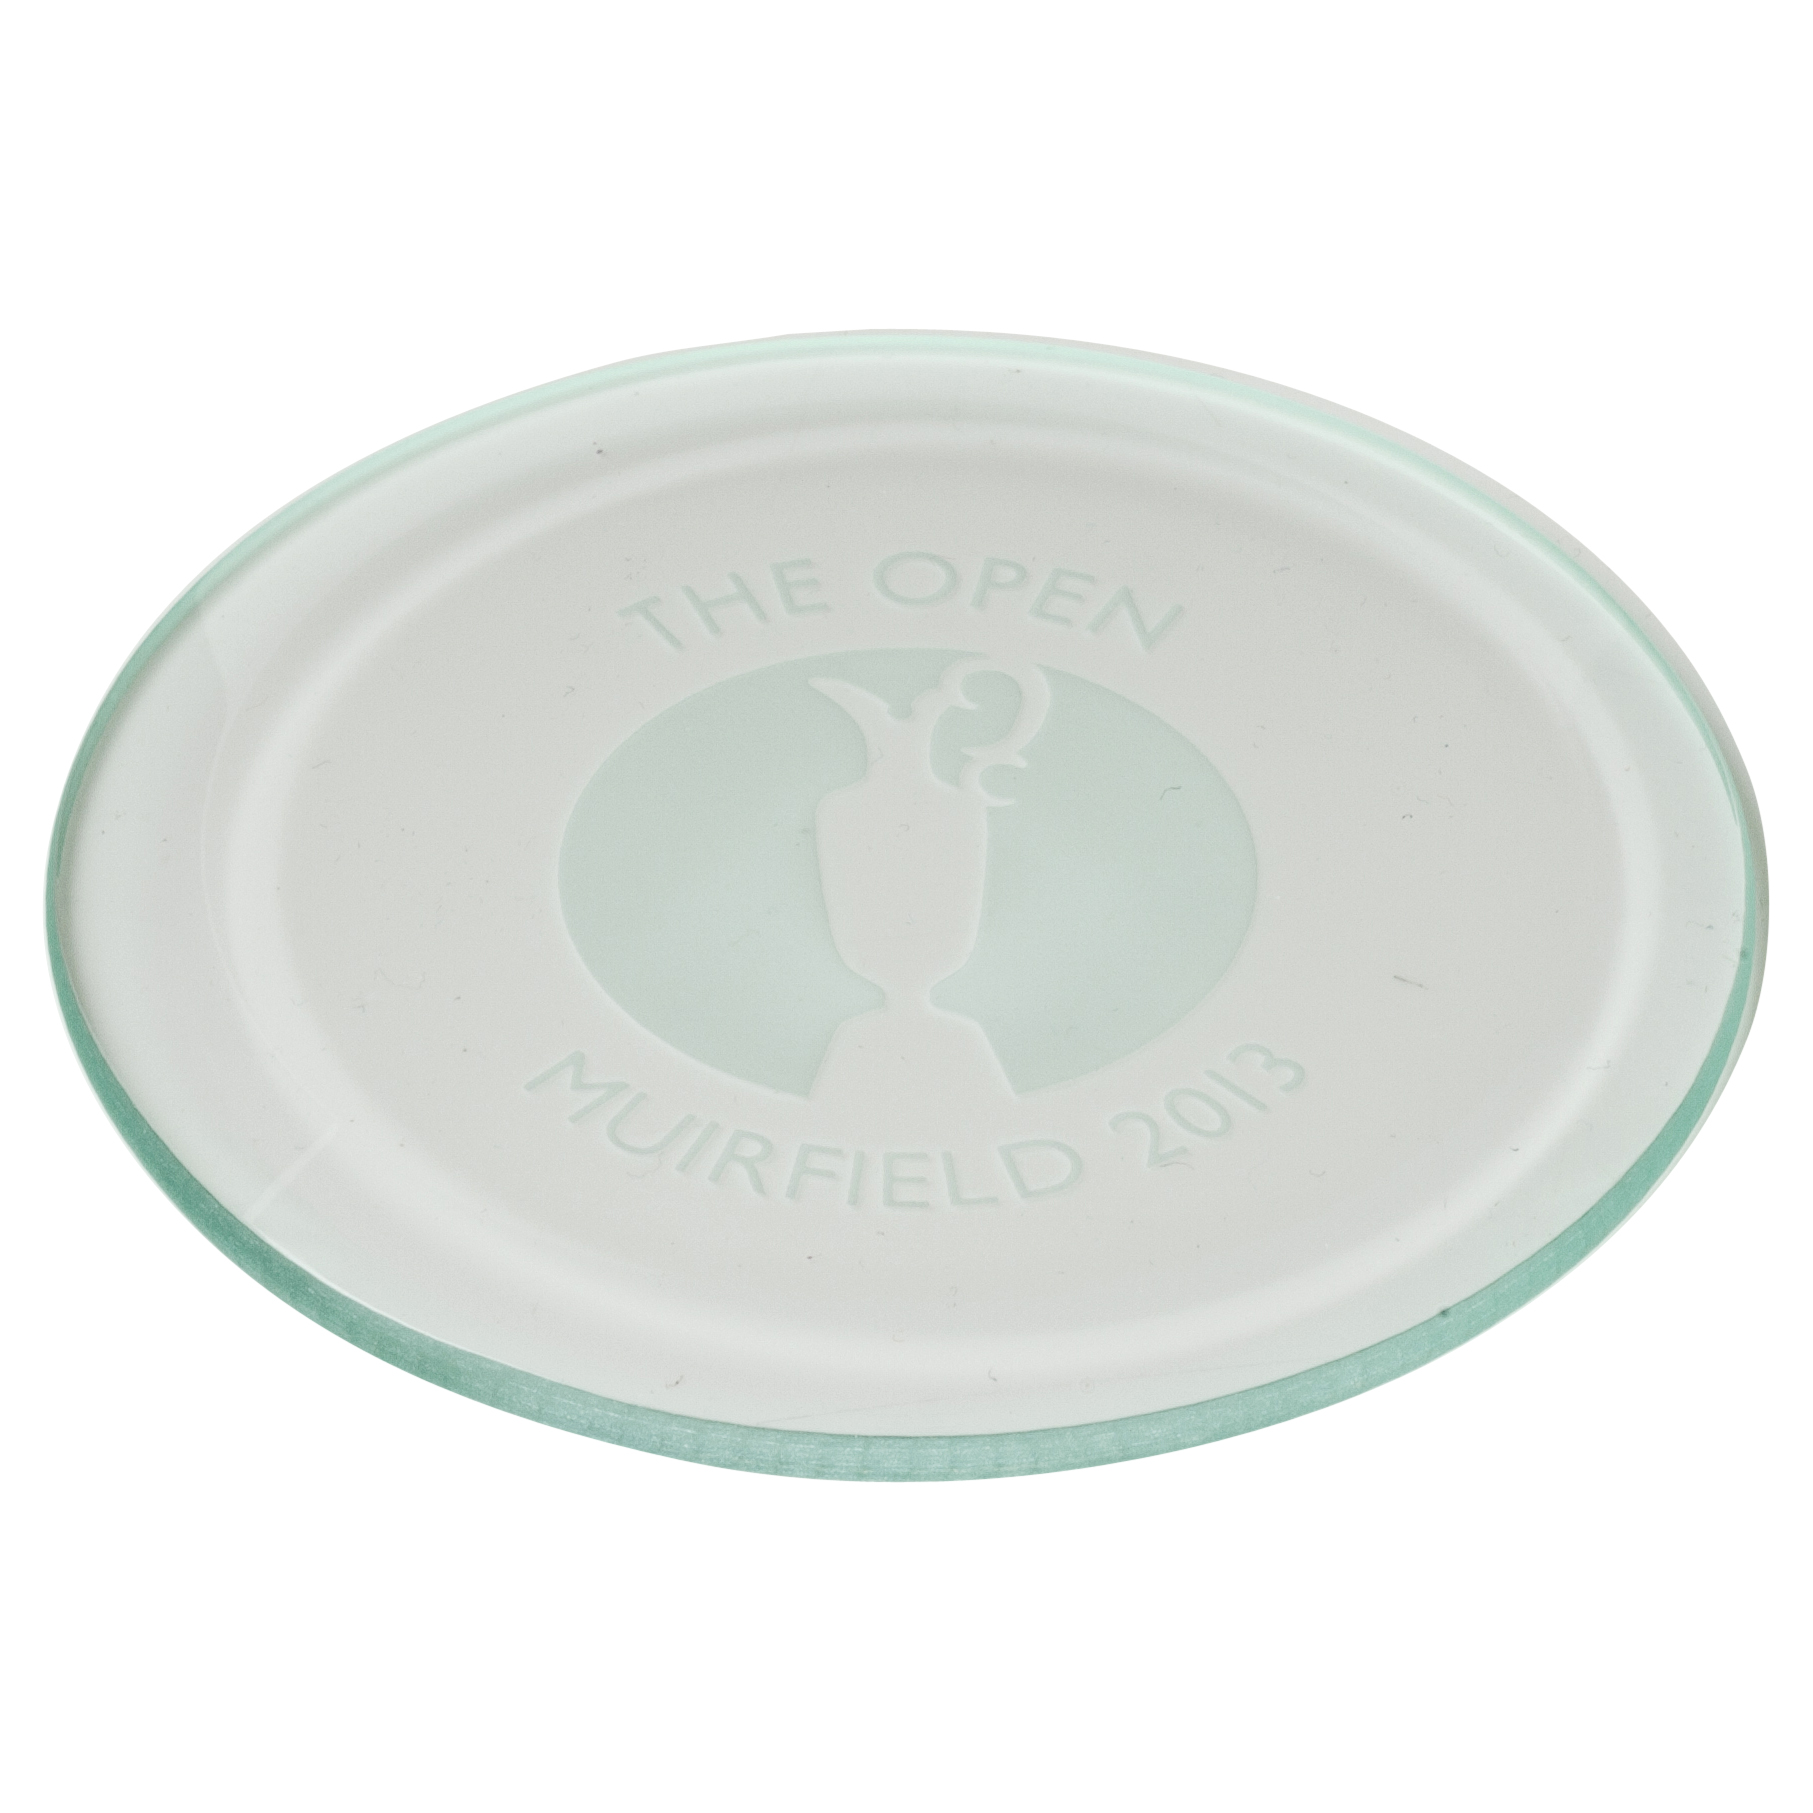 The Open Championship 2013 Muirfield Round Coaster